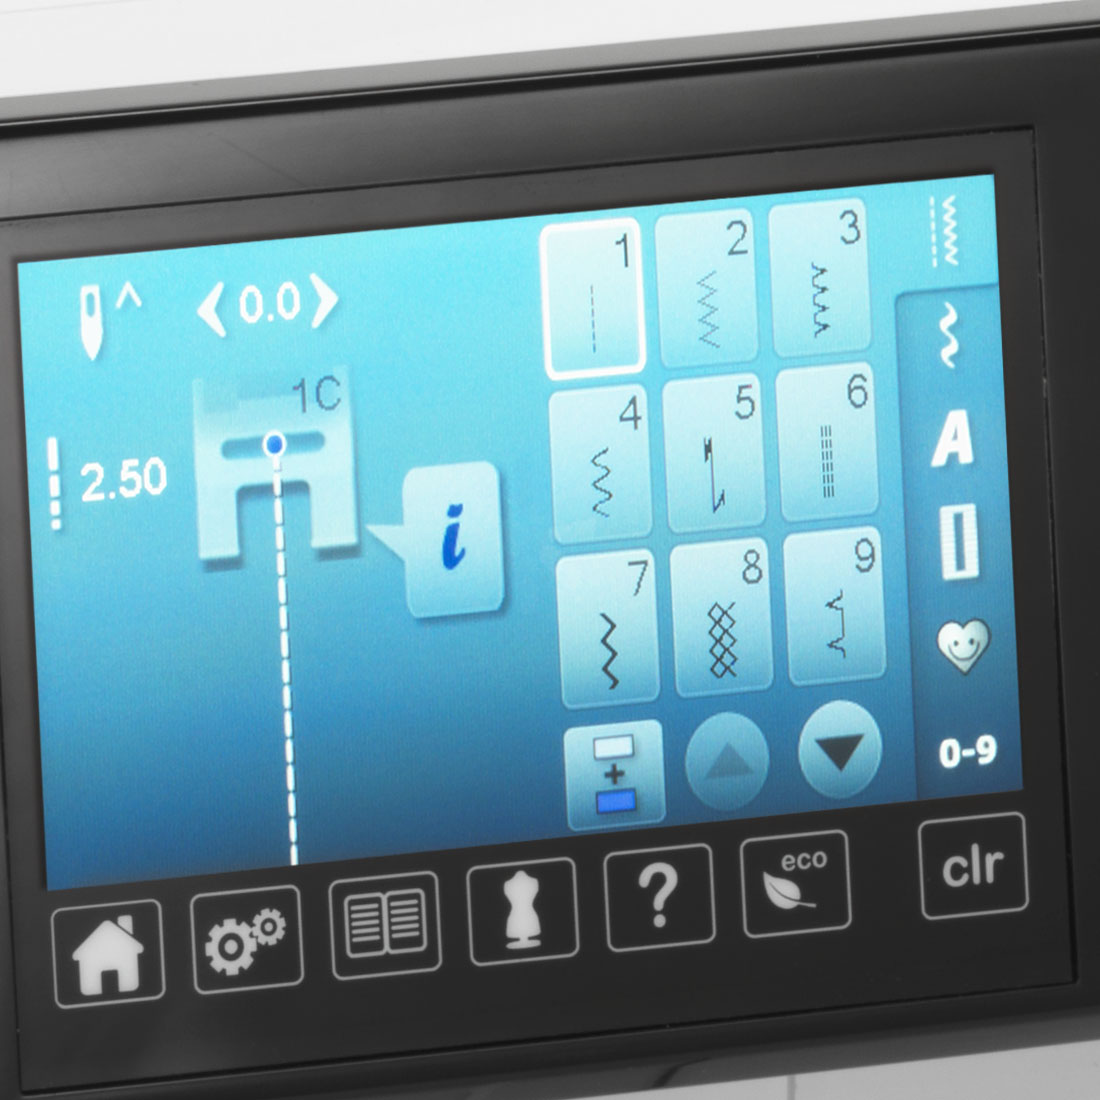 Intuitive operation using a modern touchscreen